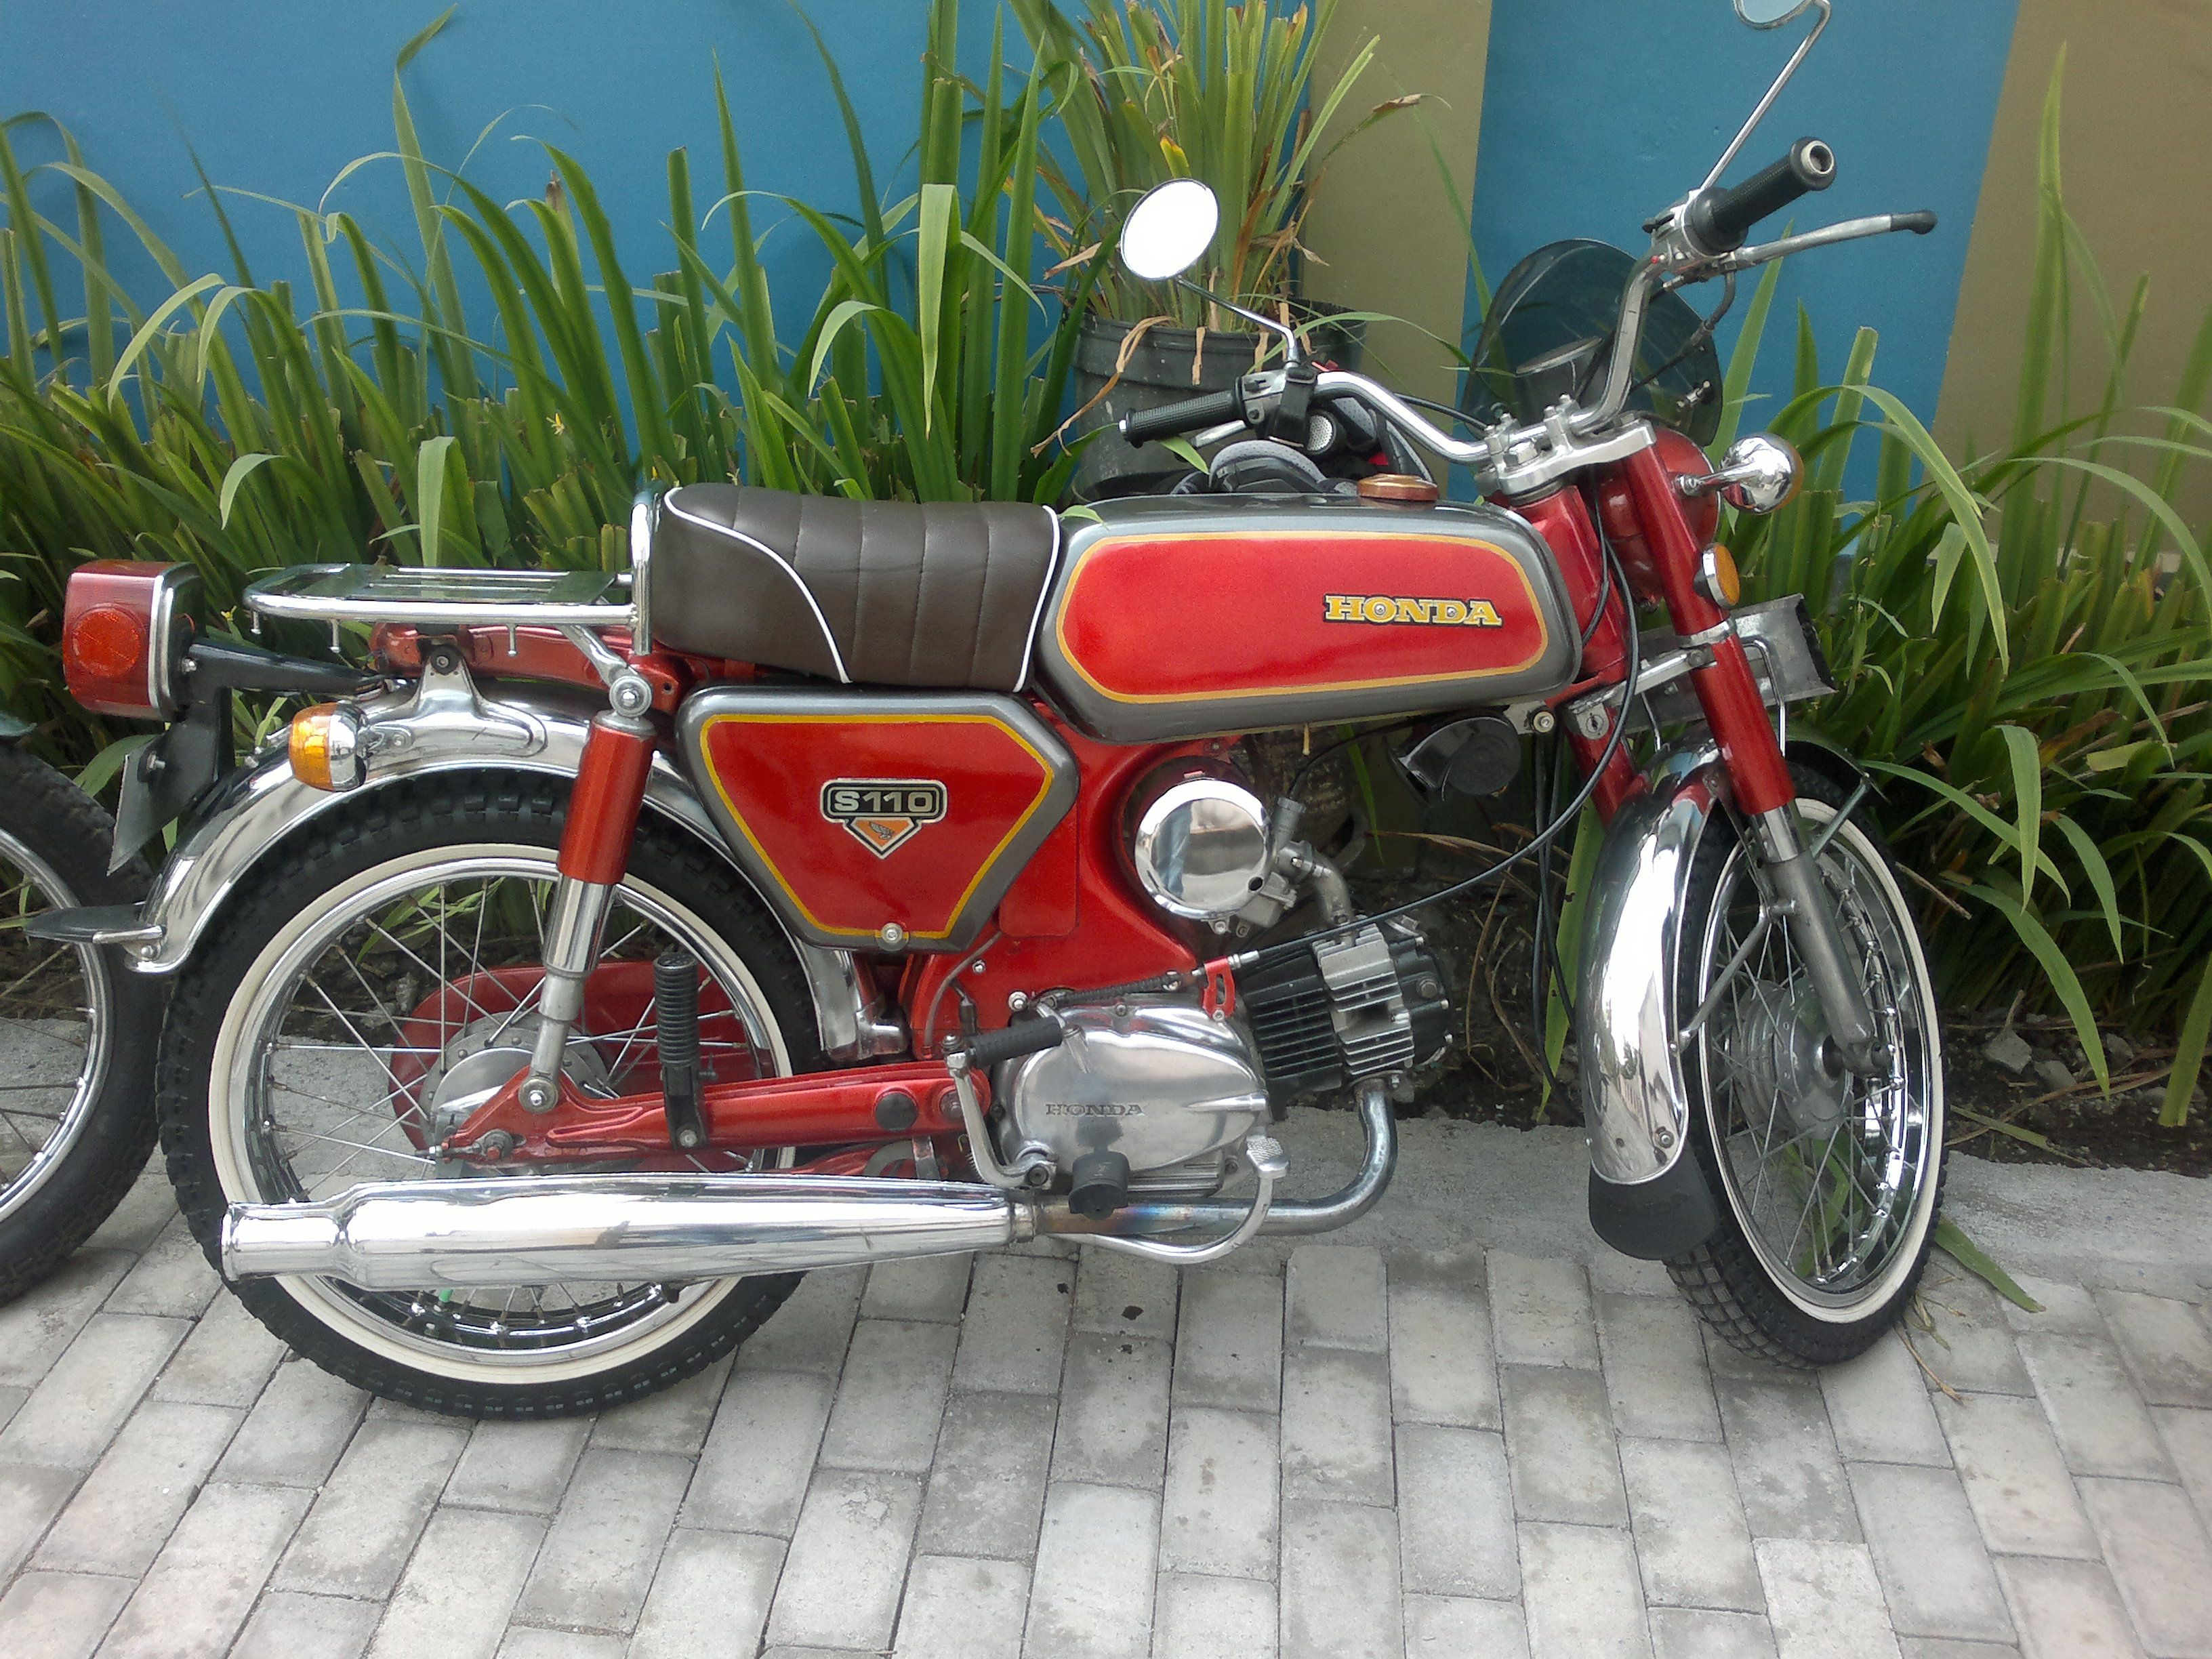 Pin by Conan on Honda Benly S 110 Honda motorcycles